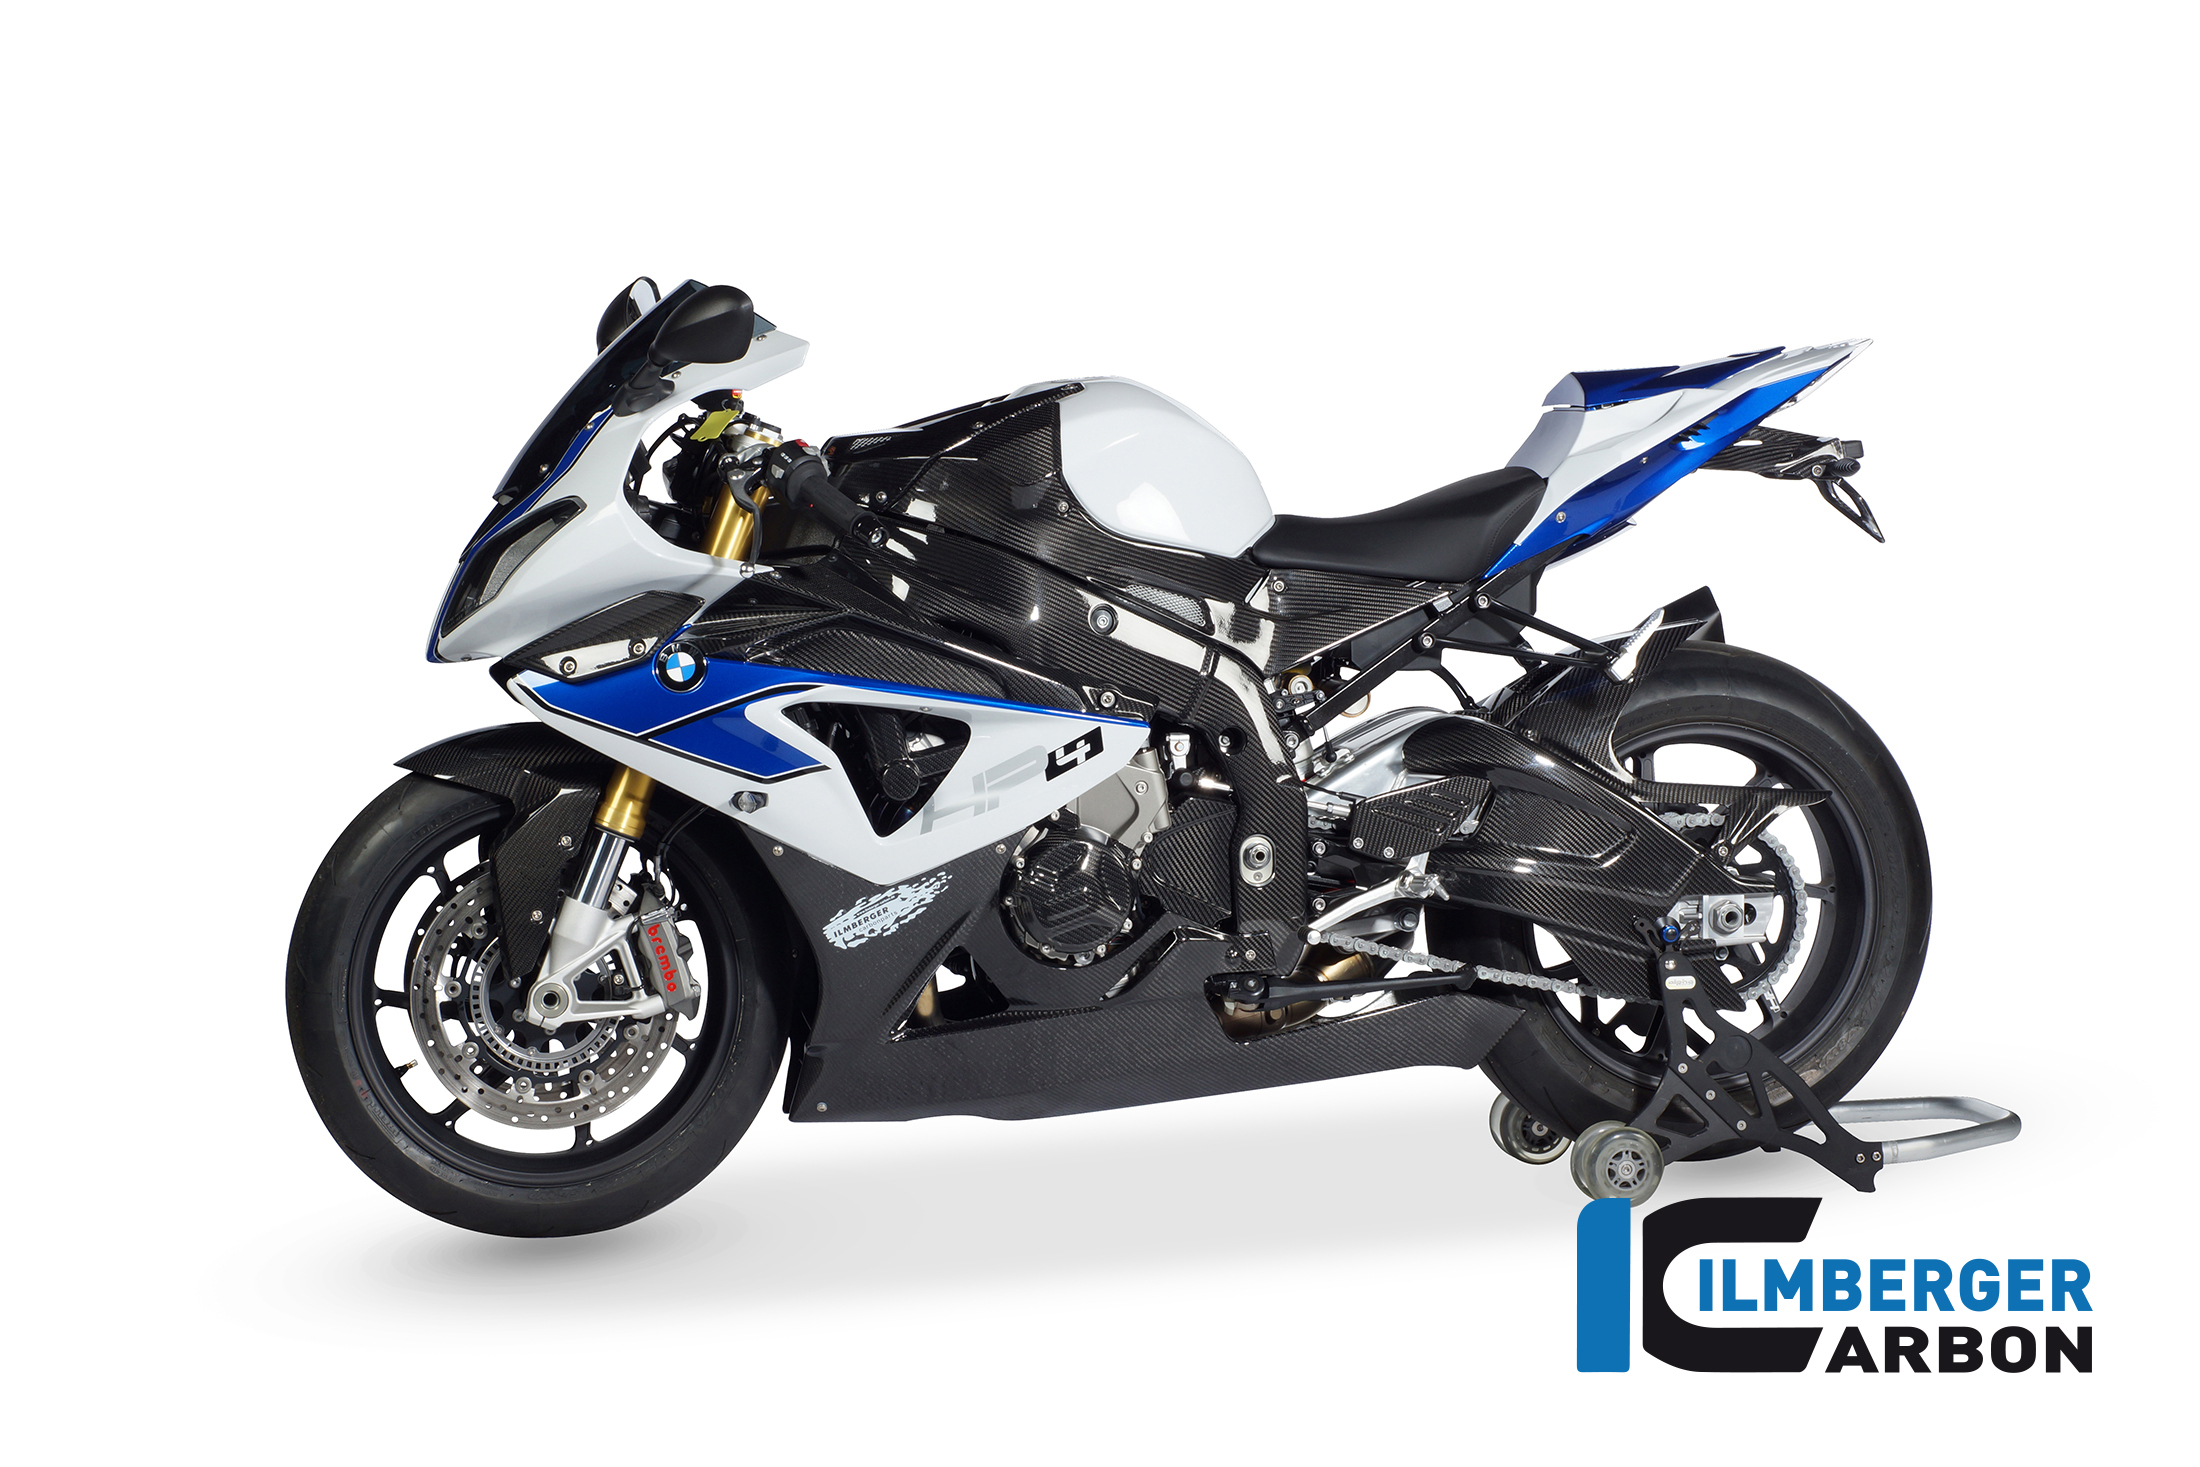 Hp4 Ab 2012 Ilmberger Carbon